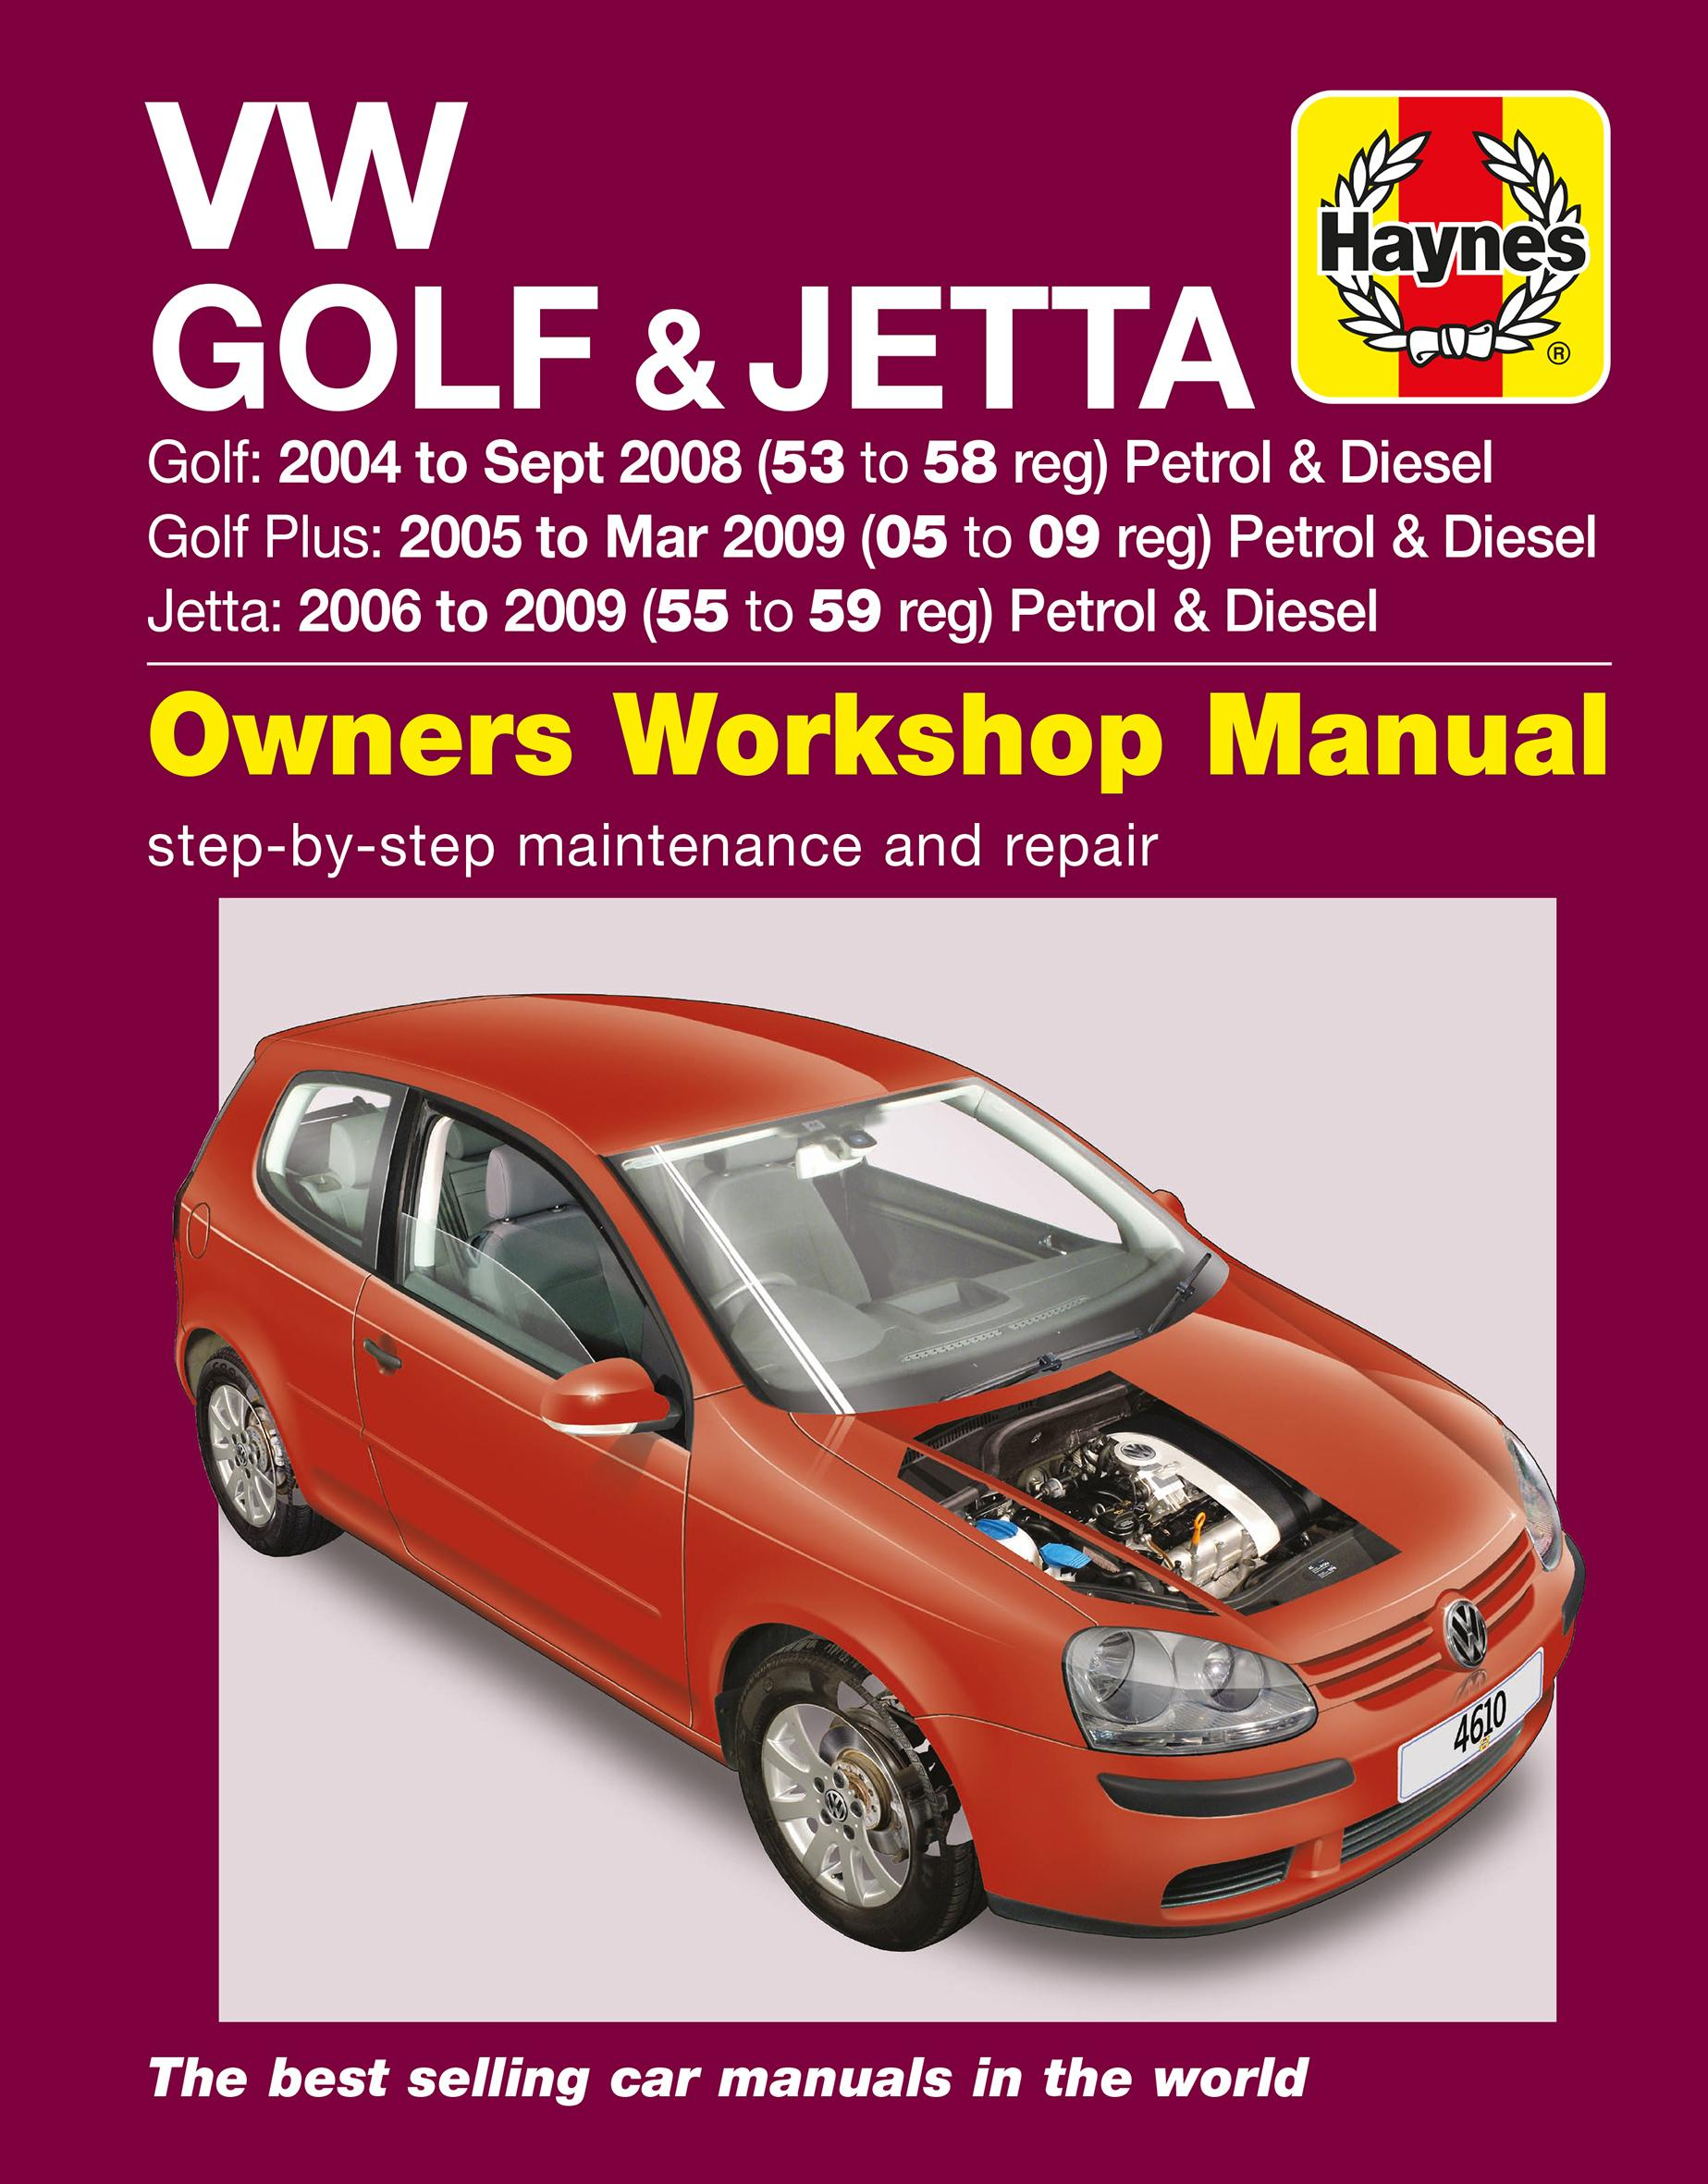 vw golf mk5 gti workshop manual product user guide instruction u2022 rh testdpc co 1968 VW Transporter Vintage VW Service Manuals